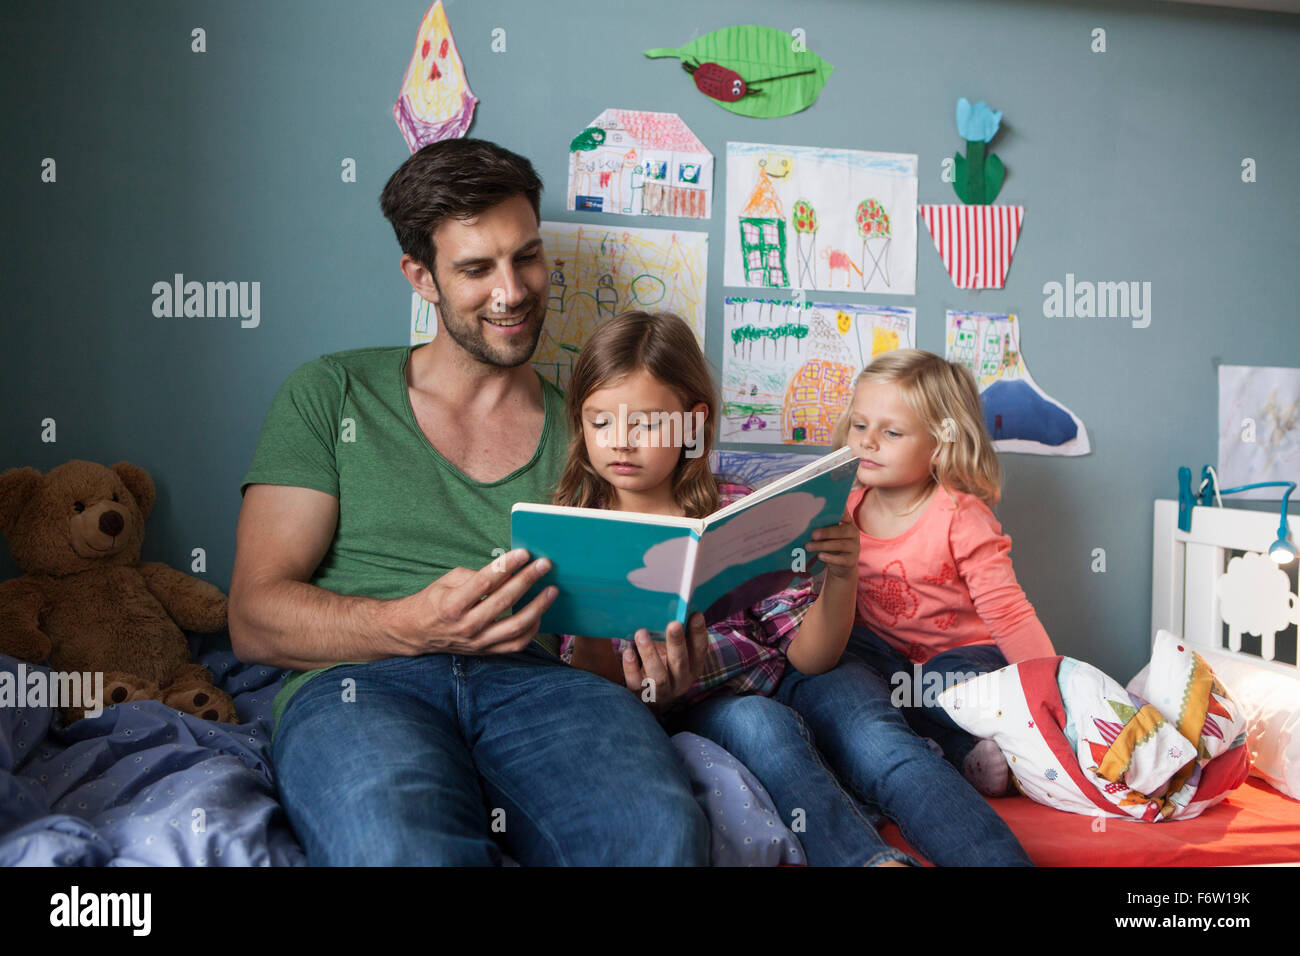 Father and his little daughters sitting together on bed in children's room reading a book Stock Photo